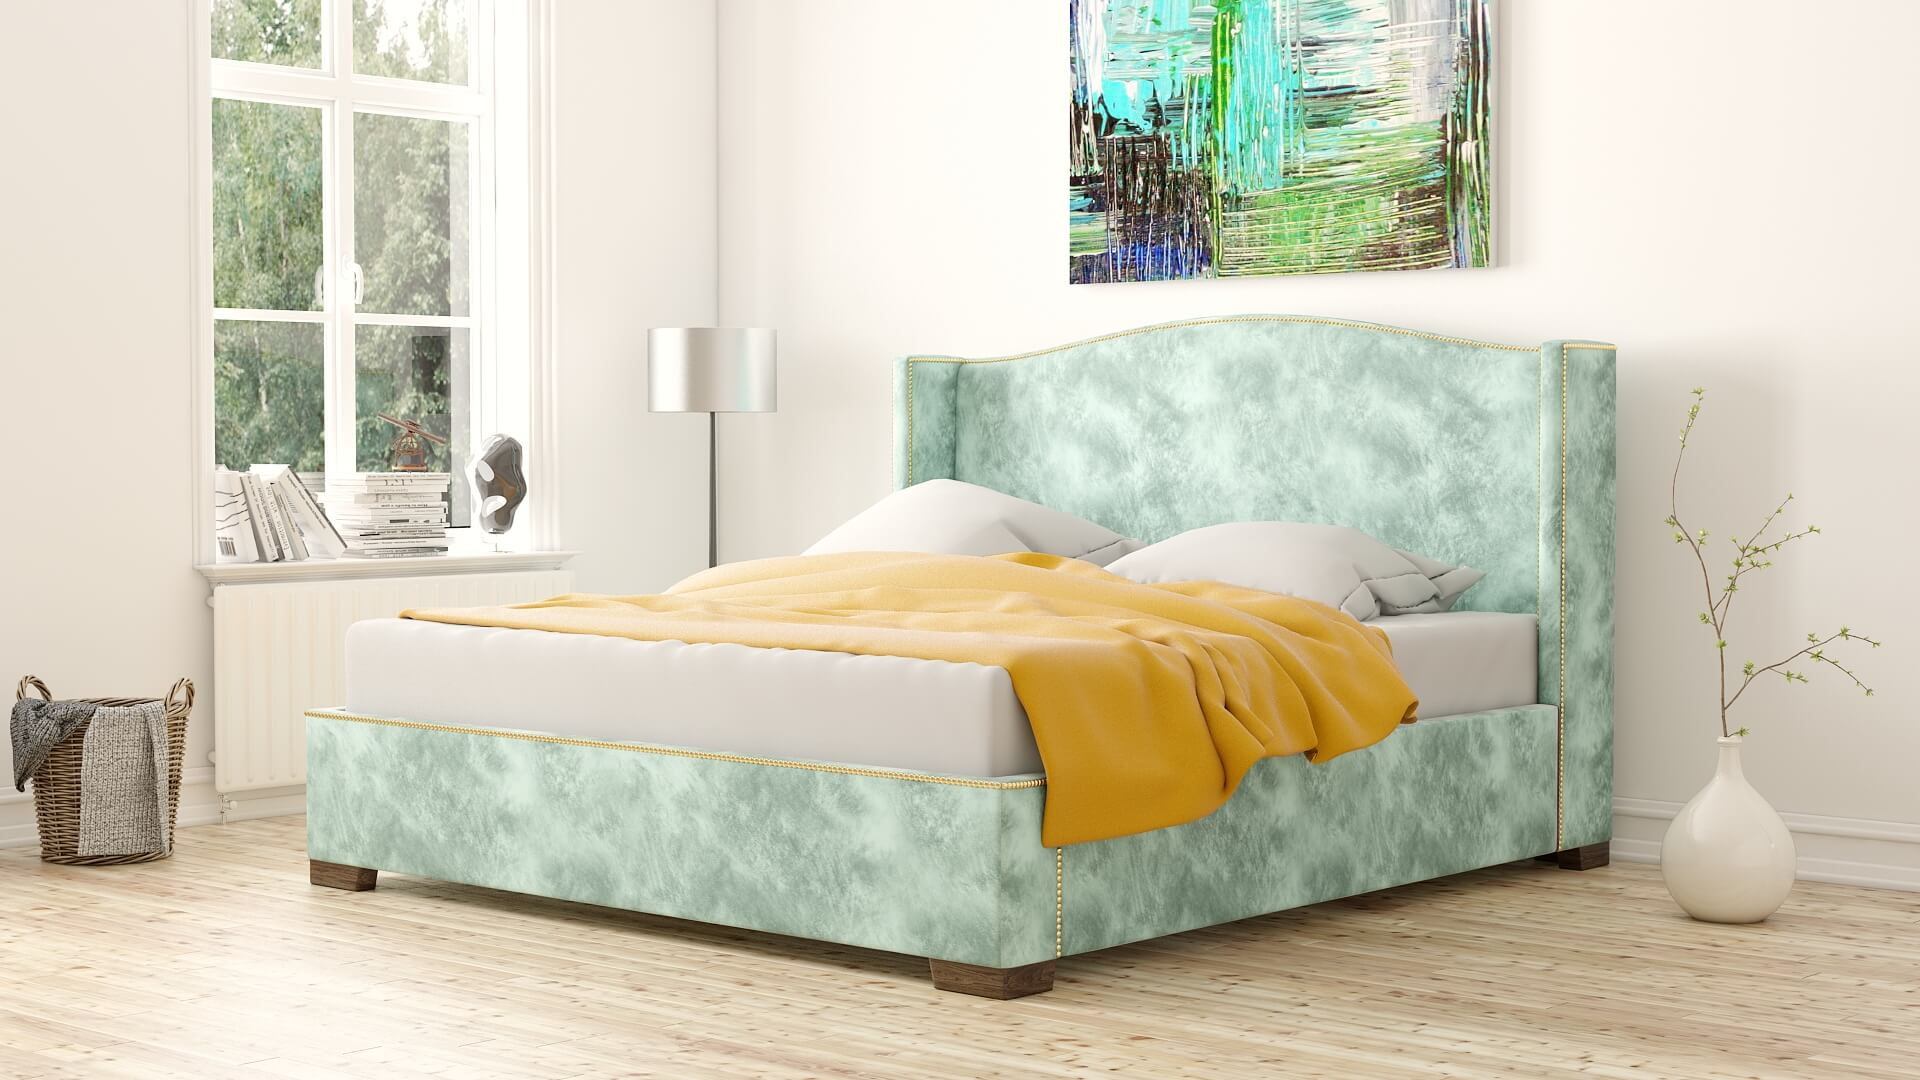 maya bed furniture gallery 3